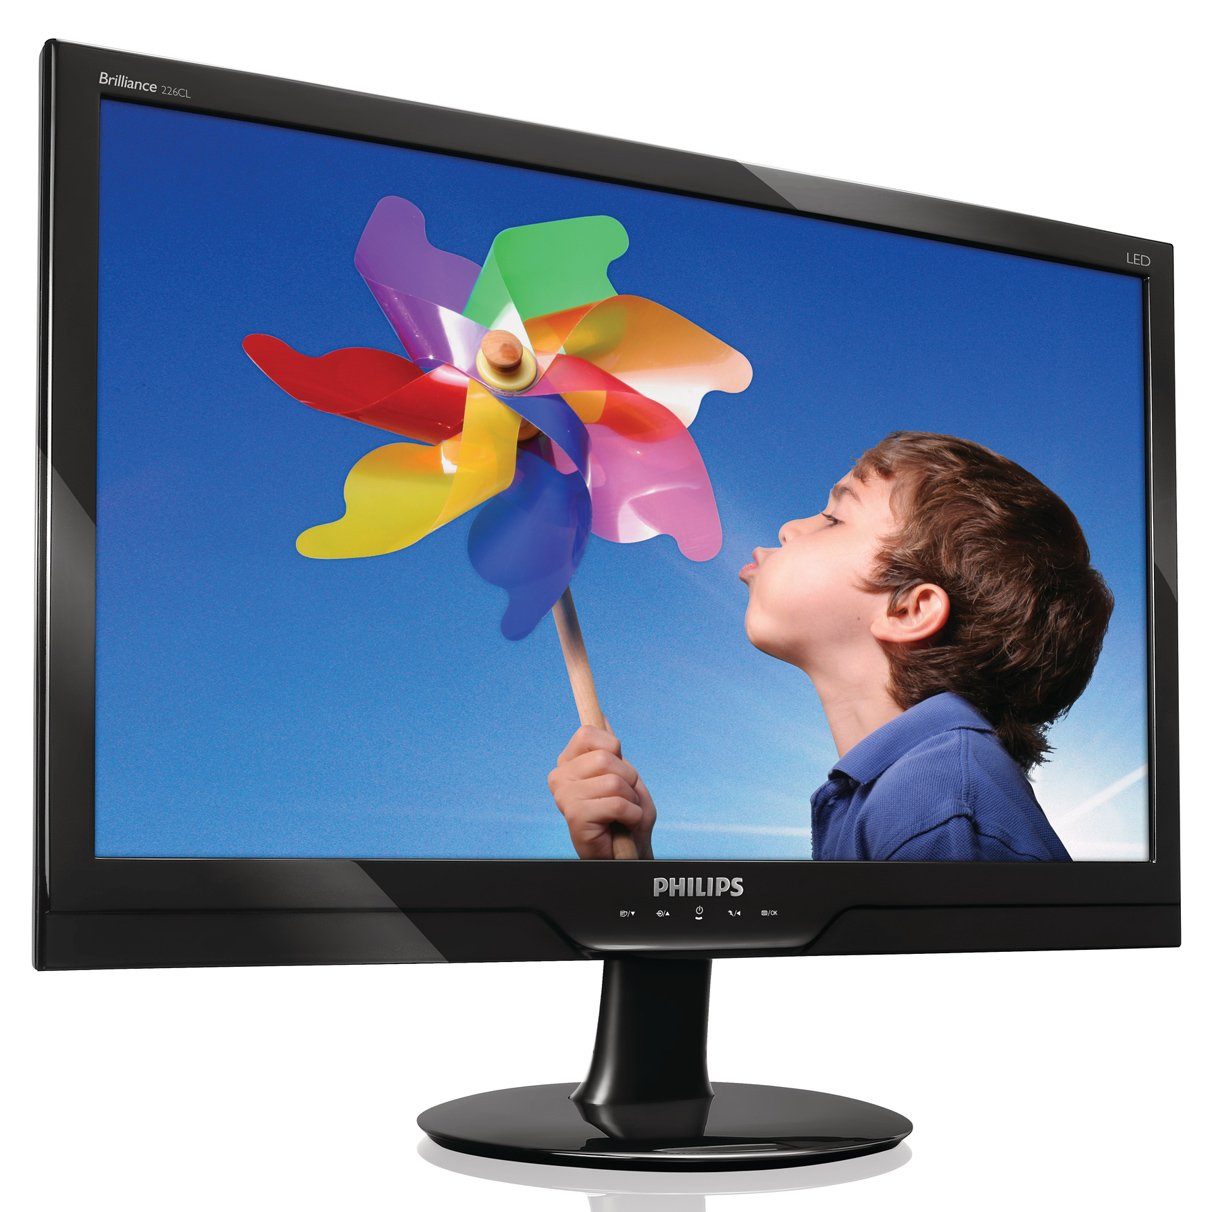 Philips 226CL2SB/00 LCD Monitor Last